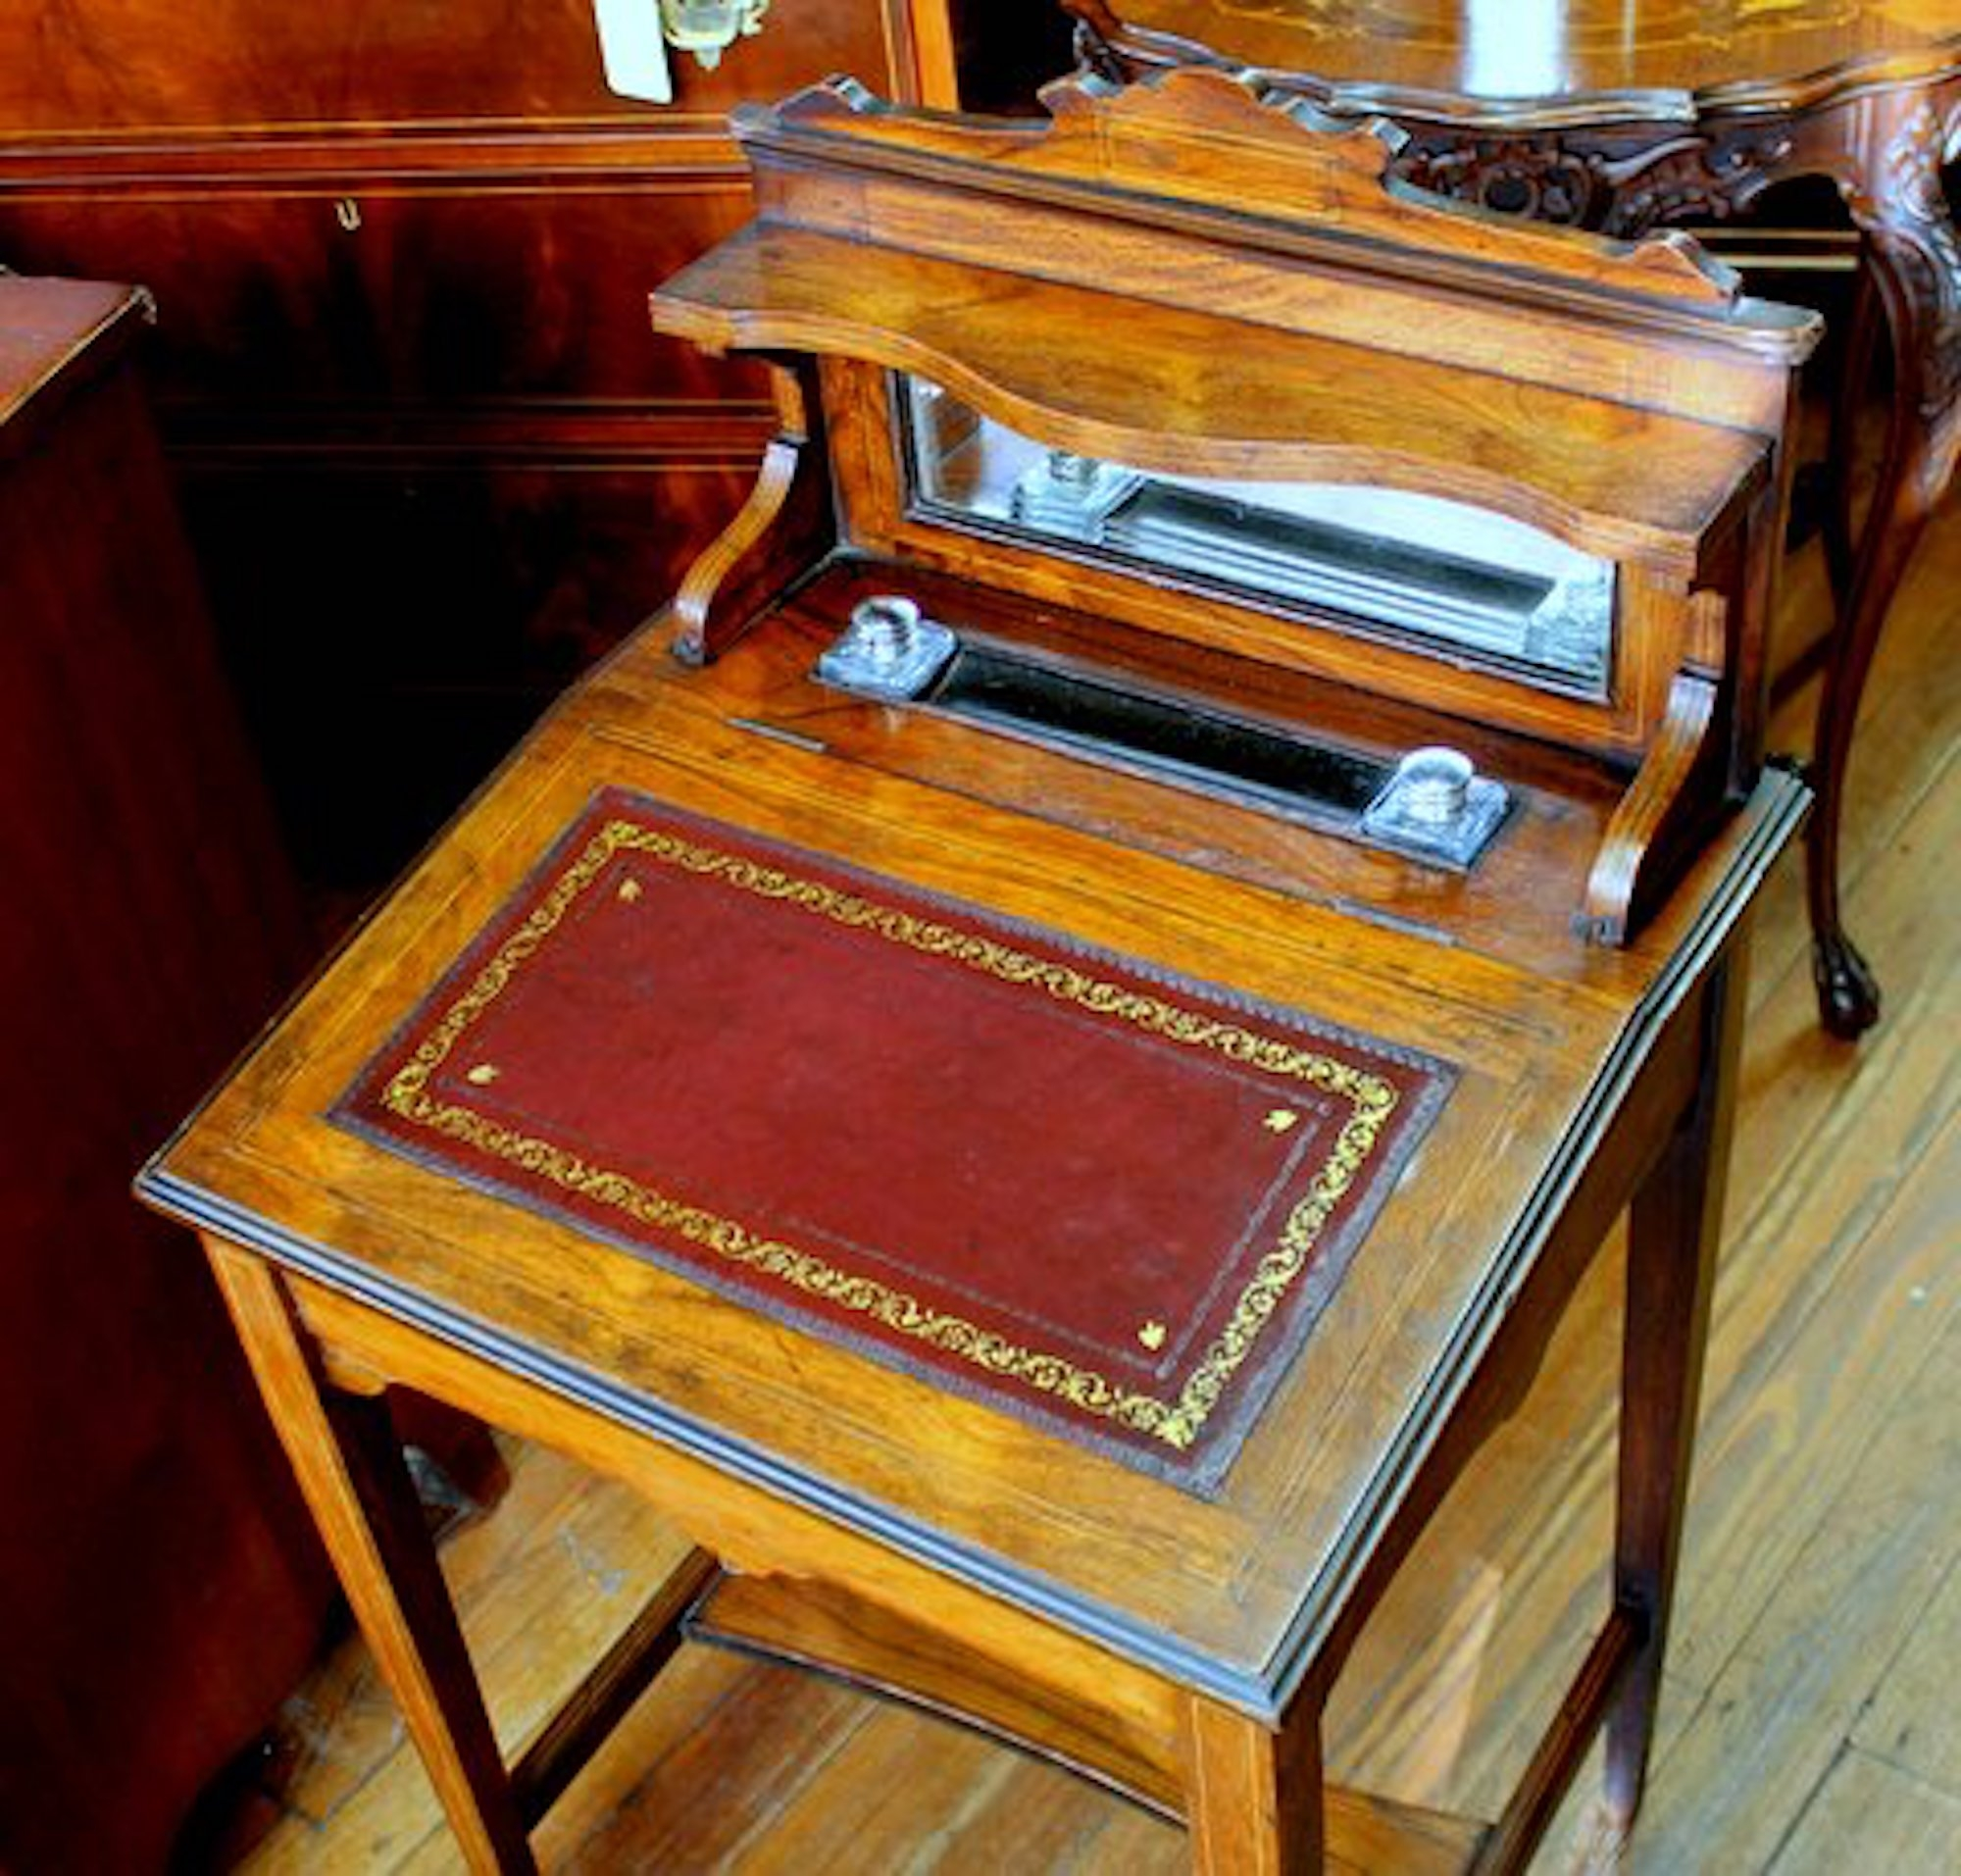 child writing desk Whether you're looking for computer desks, writing desks, executive desks, corner desks, hutch desks, secretary desks, ladder desks, trestle desks or just a basic desk, check out our selection you can find a small desk from our selection of desks for small spaces.